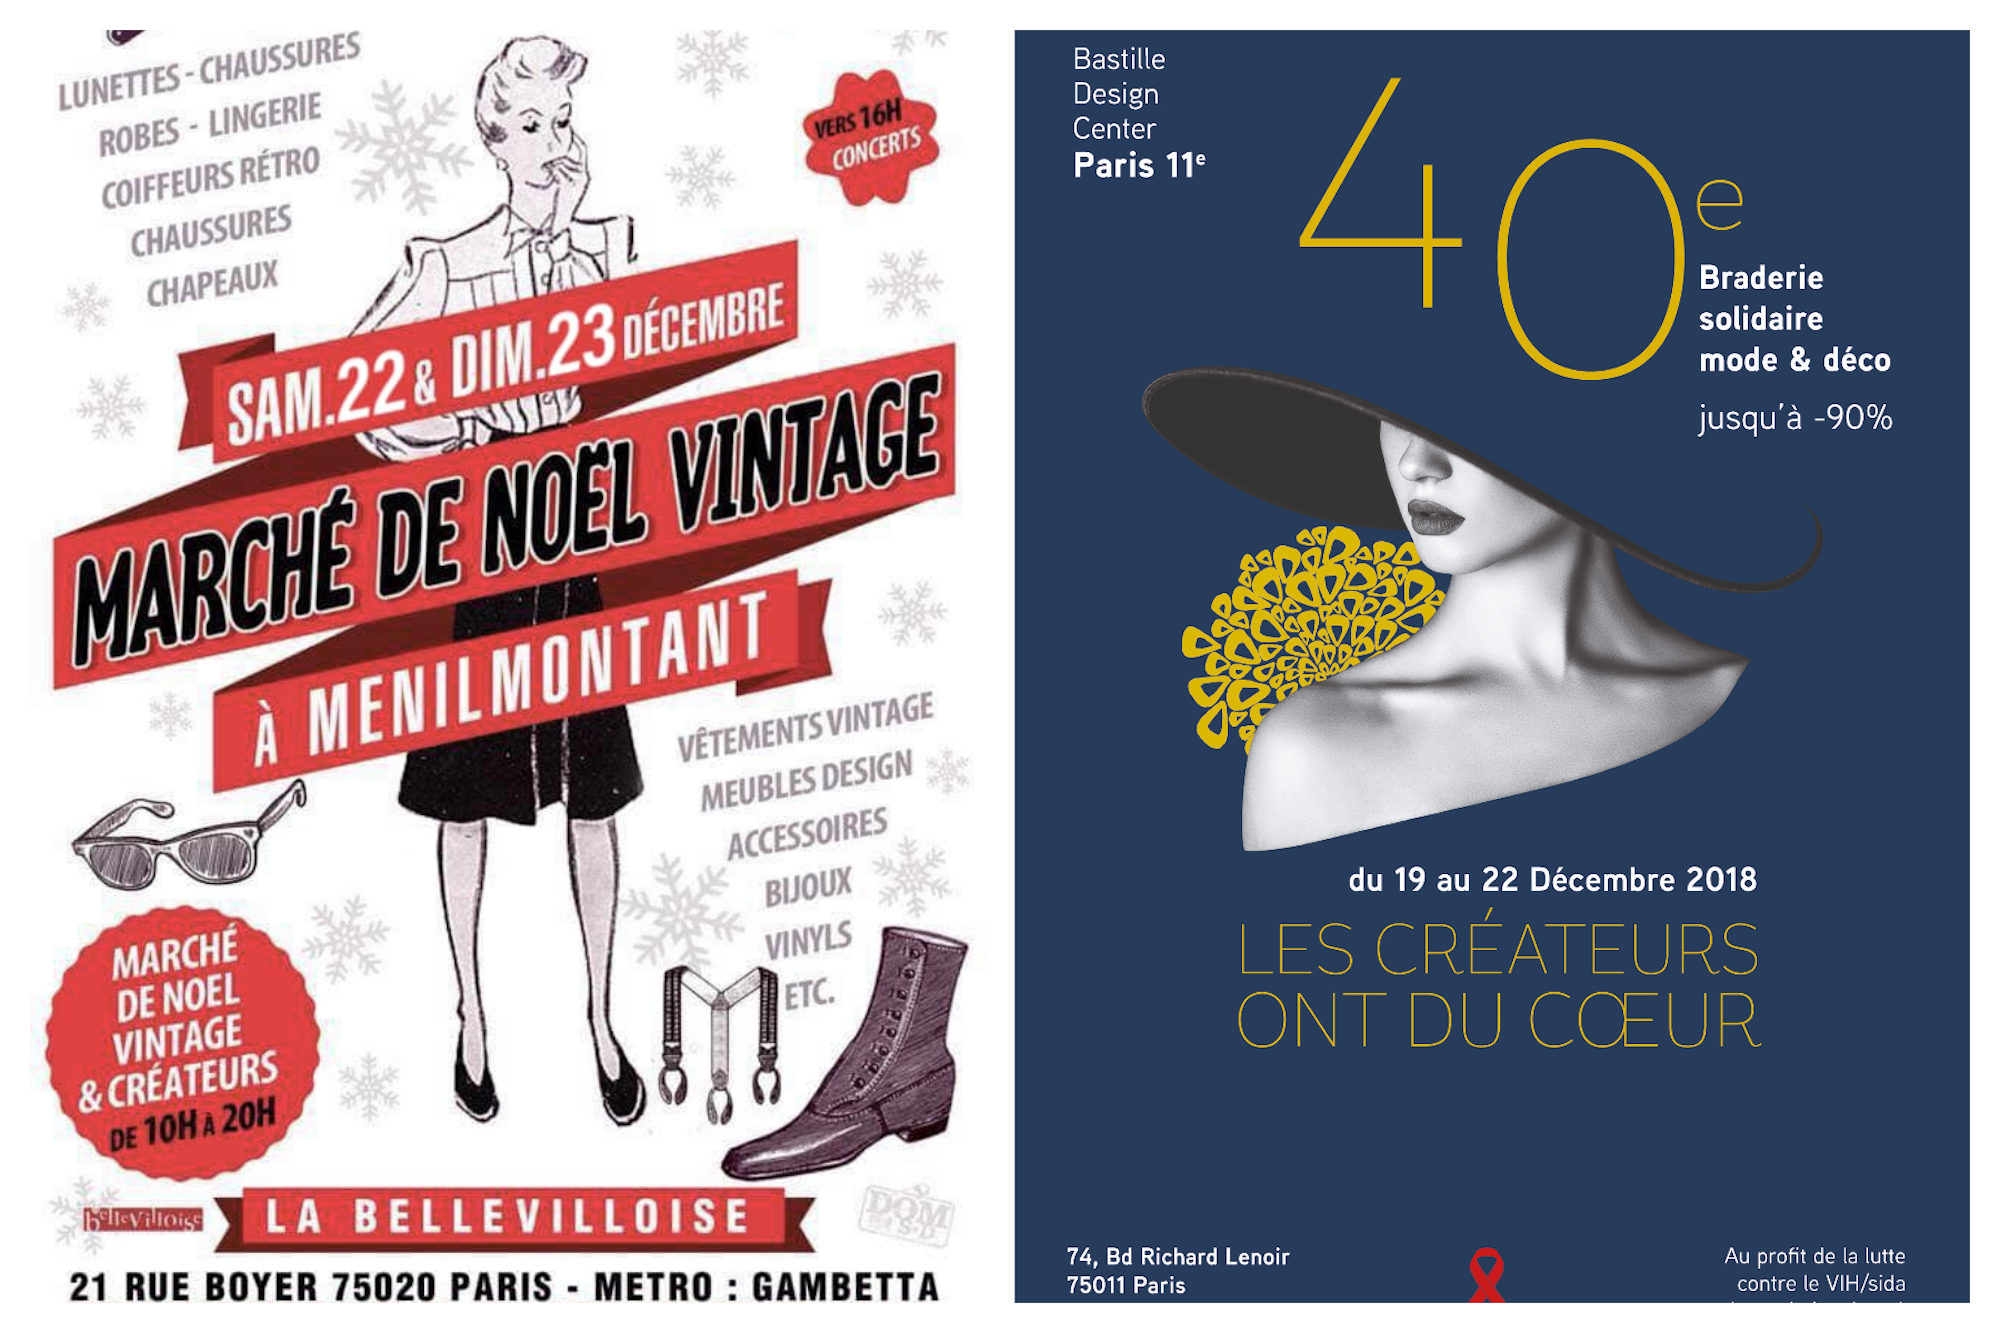 Markets in Paris are fantastic, especially for Christmas shopping, including the vintage Christmas market of Menilmontantant (left) and the chicer fashion and home design sale in the 11th district of Paris (left).